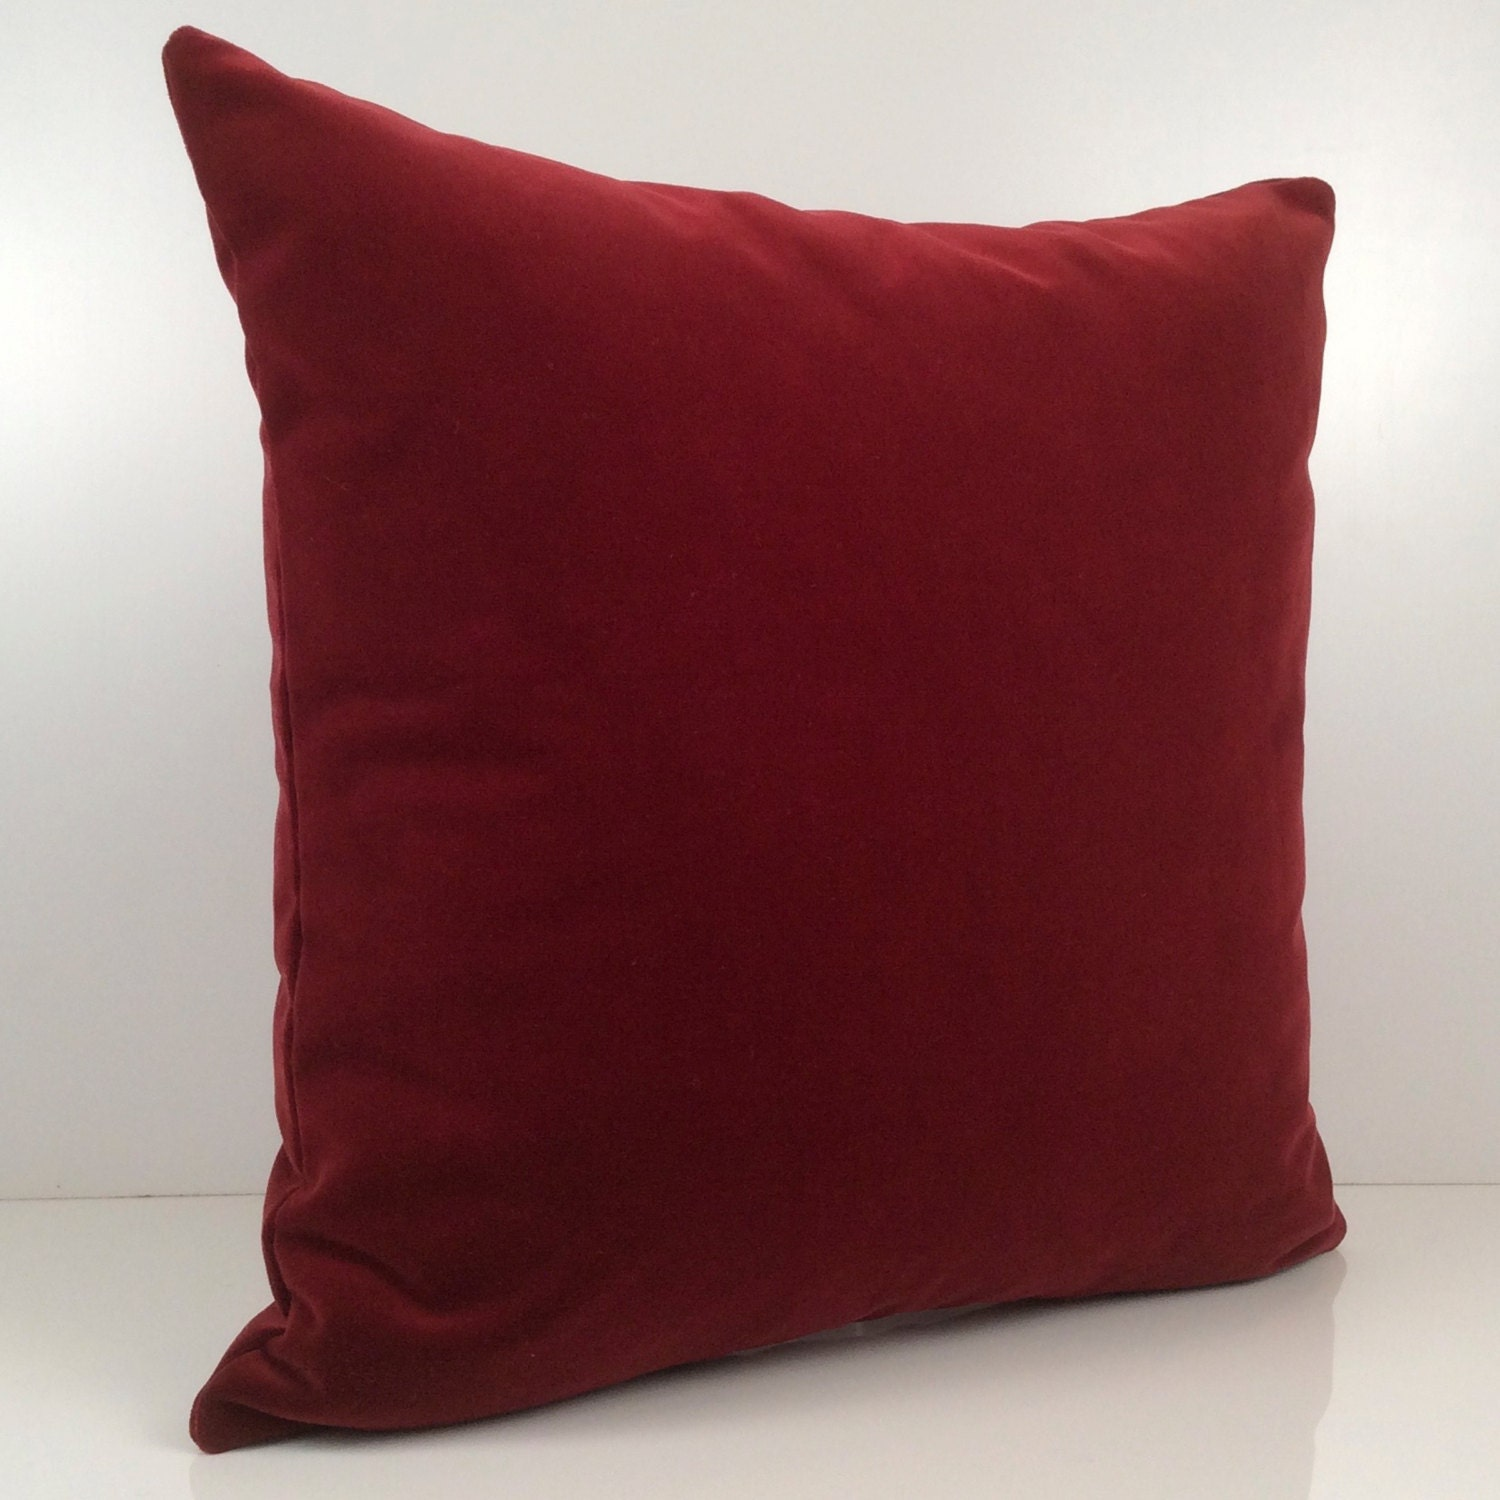 Bright Burgundy Pillow Throw Pillow Cover Decorative By